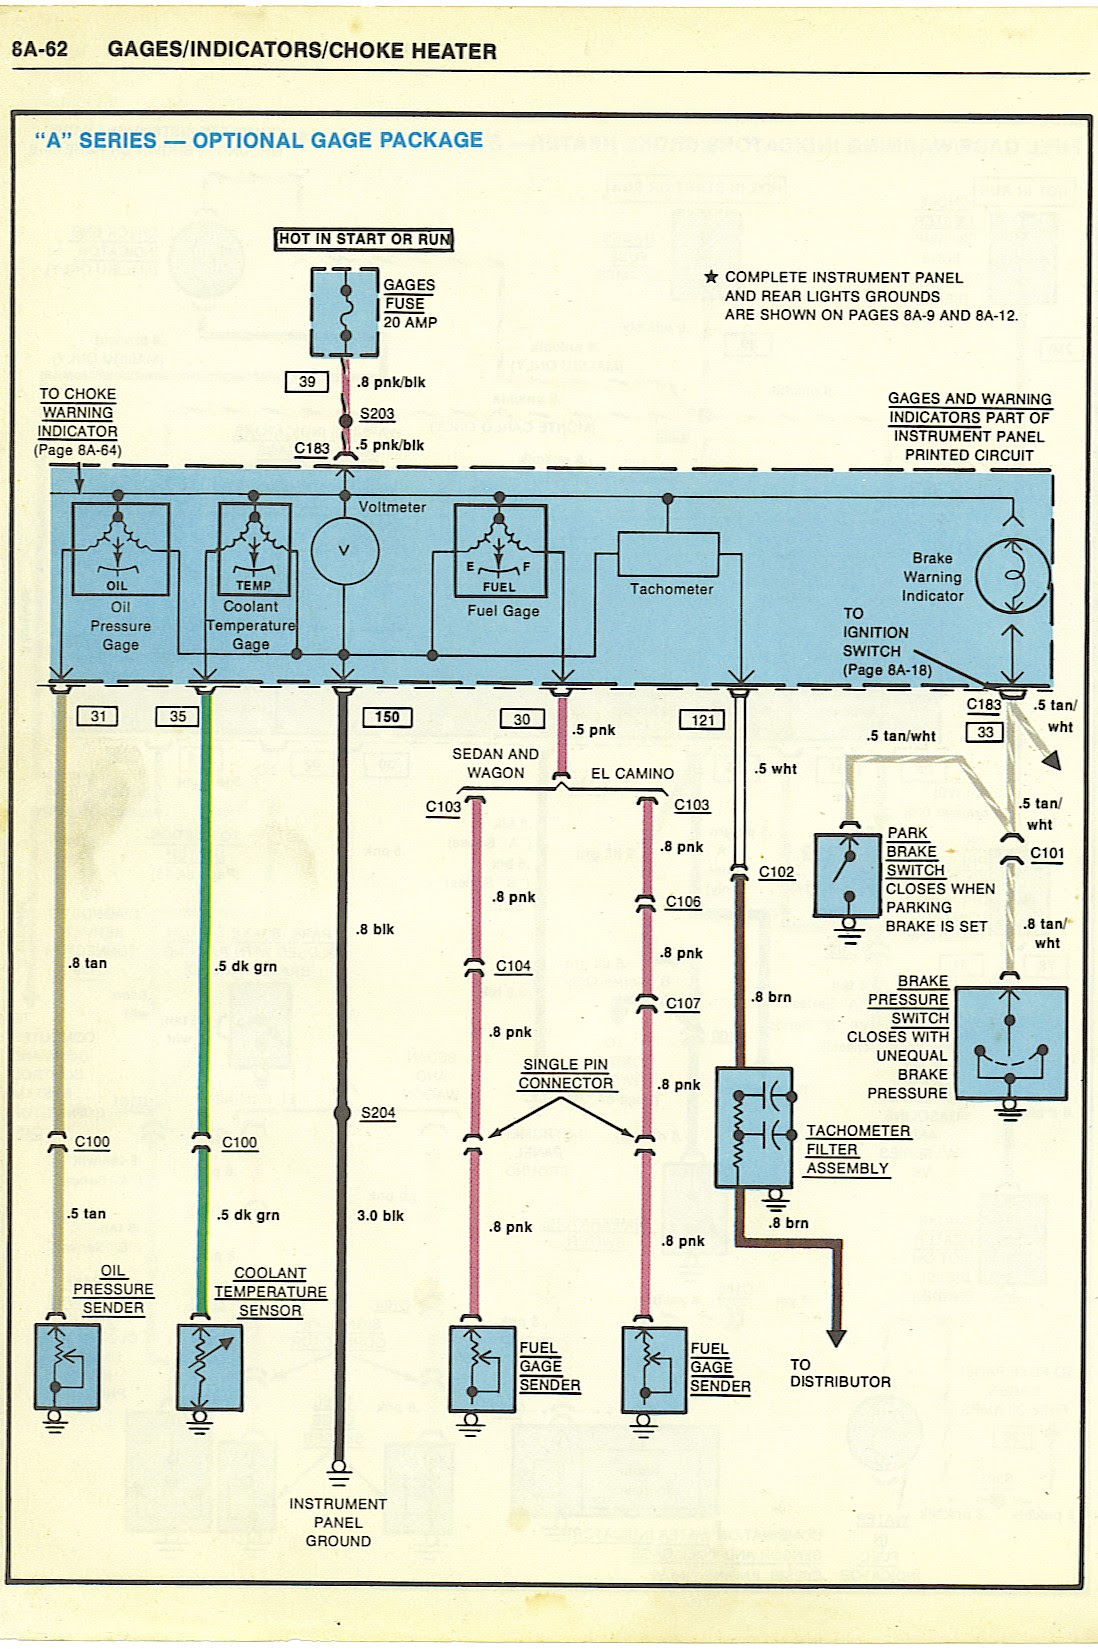 Diagram 1968 El Camino Wiper Switch Wiring Diagram Full Version Hd Quality Wiring Diagram Carsuspensionssytemparts Chaussureadidas Fr